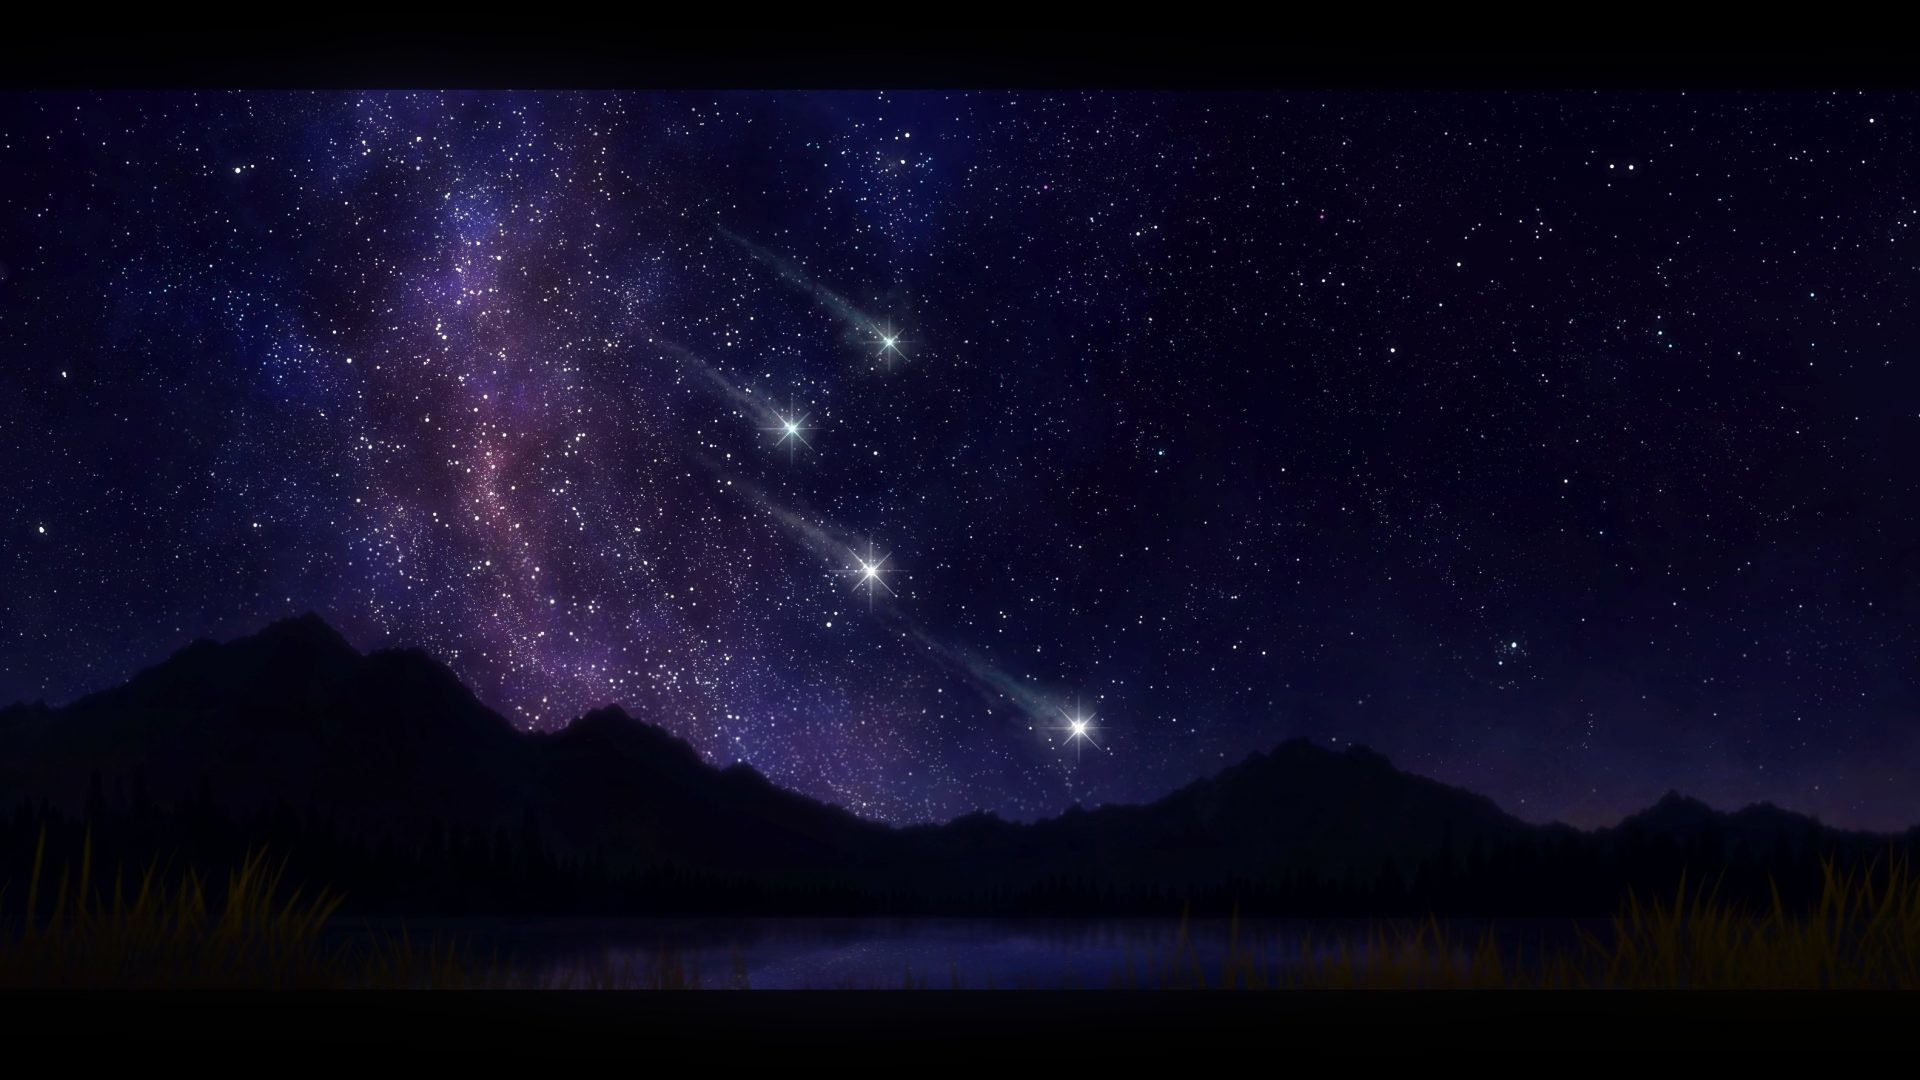 1920x1080 Magical Tag - Sky Magical Night Earth Stars Nights Nature Wallpaper In The  for HD 16